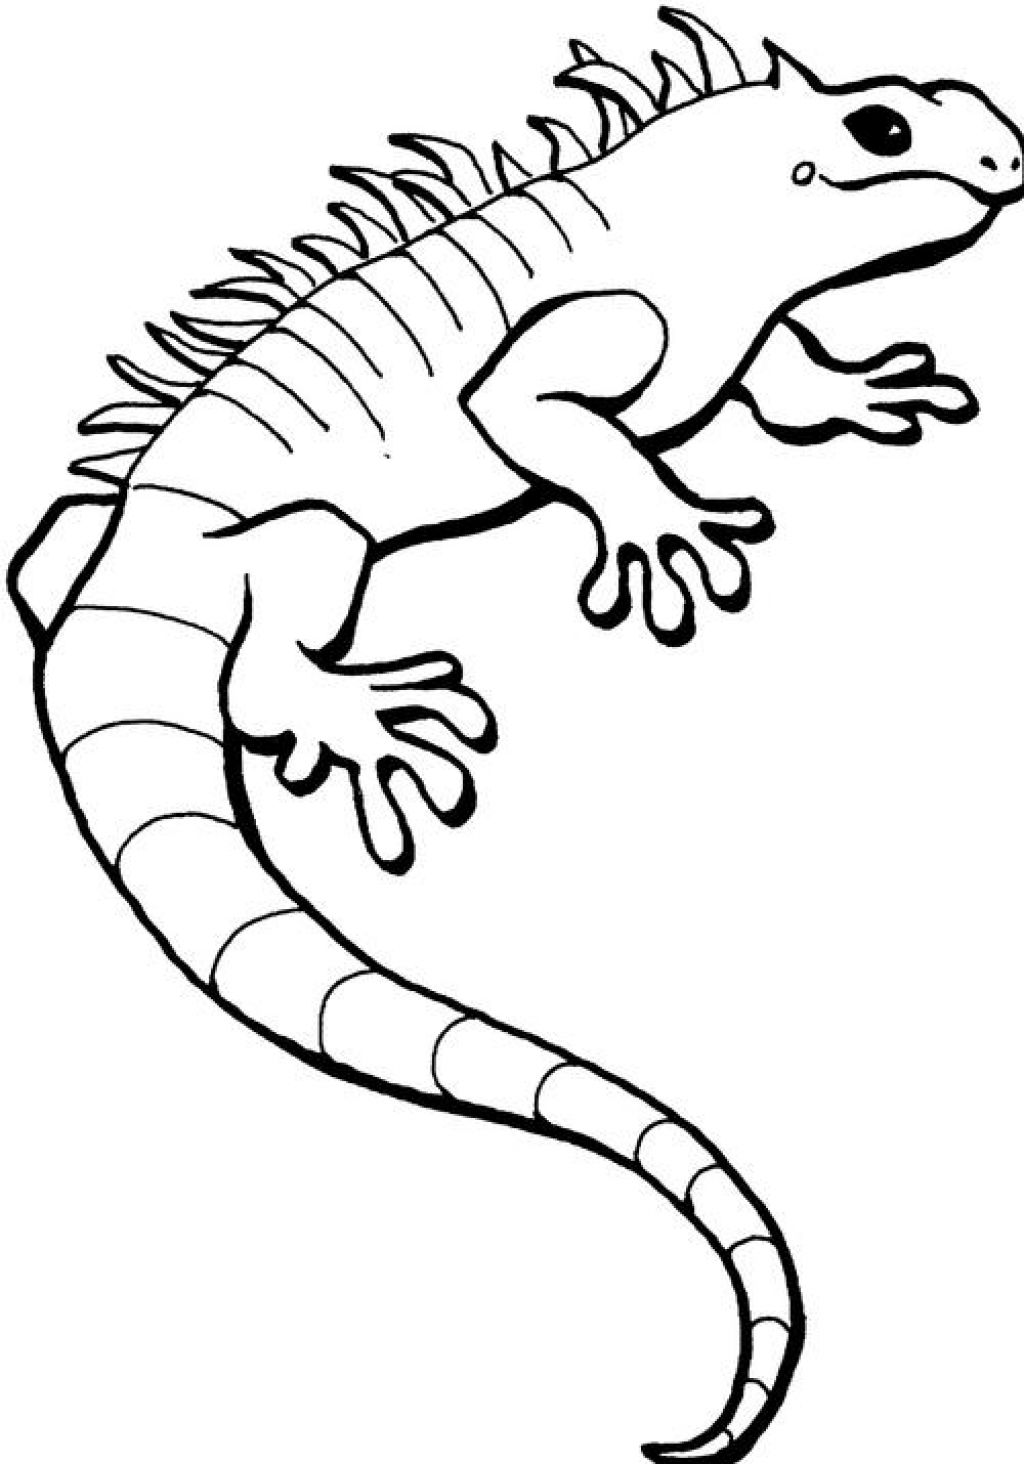 iguana coloring pages free printable iguana coloring pages for kids pages coloring iguana